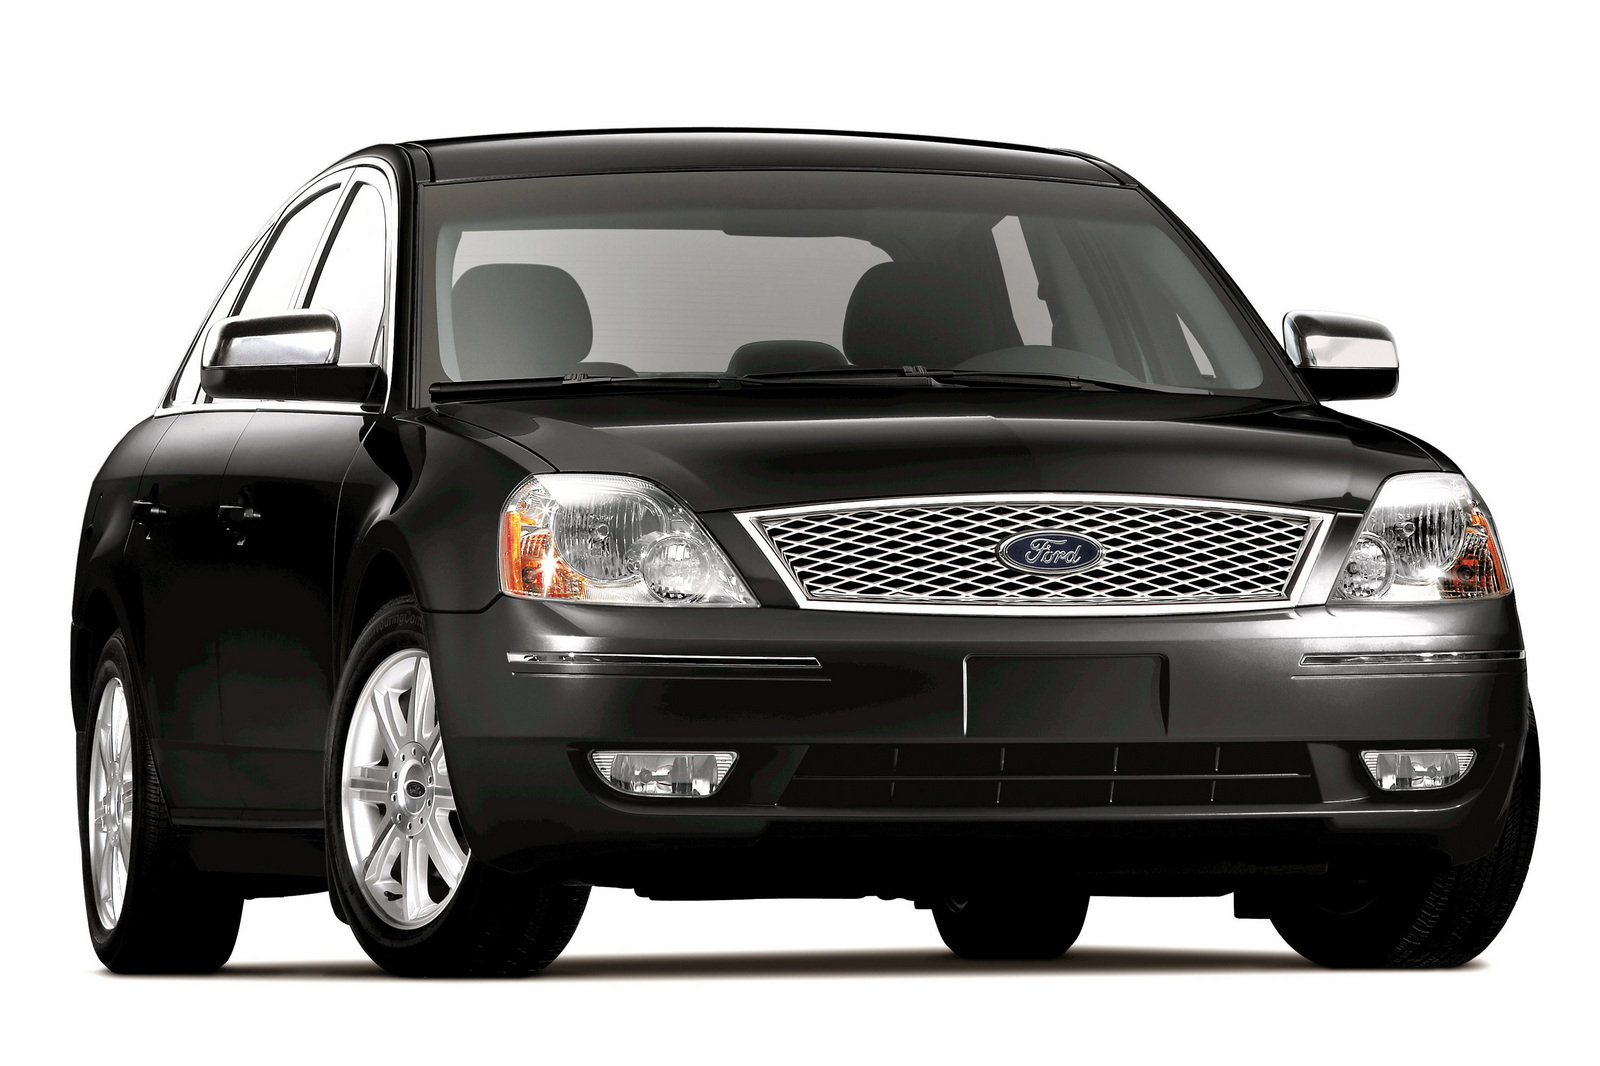 2007 ford five hundred picture 92480 car review top. Black Bedroom Furniture Sets. Home Design Ideas